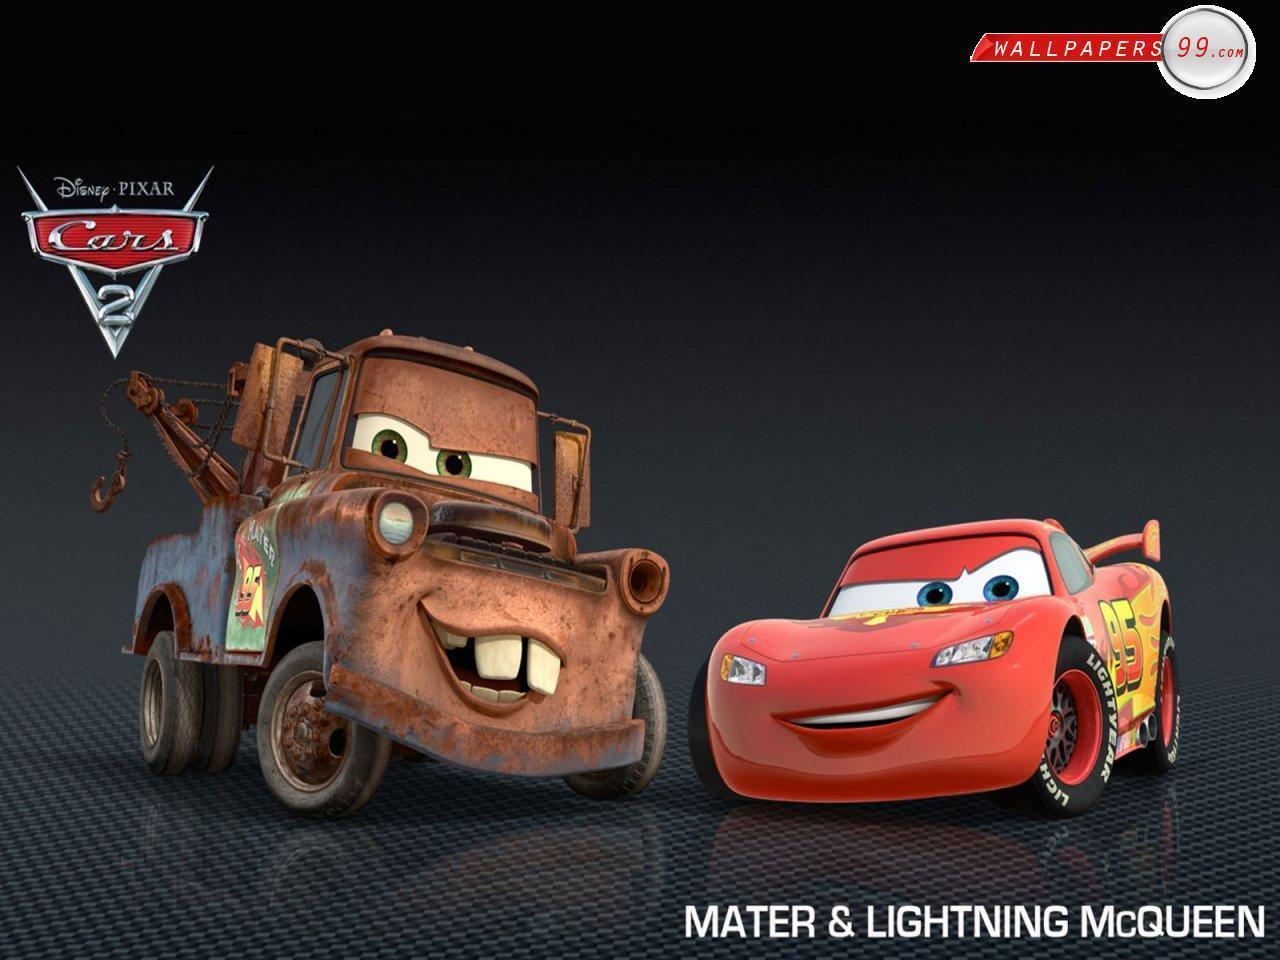 Cars 2 Cartoon Animated Movie Wallpaper HD For Mobile | Cartoons ...